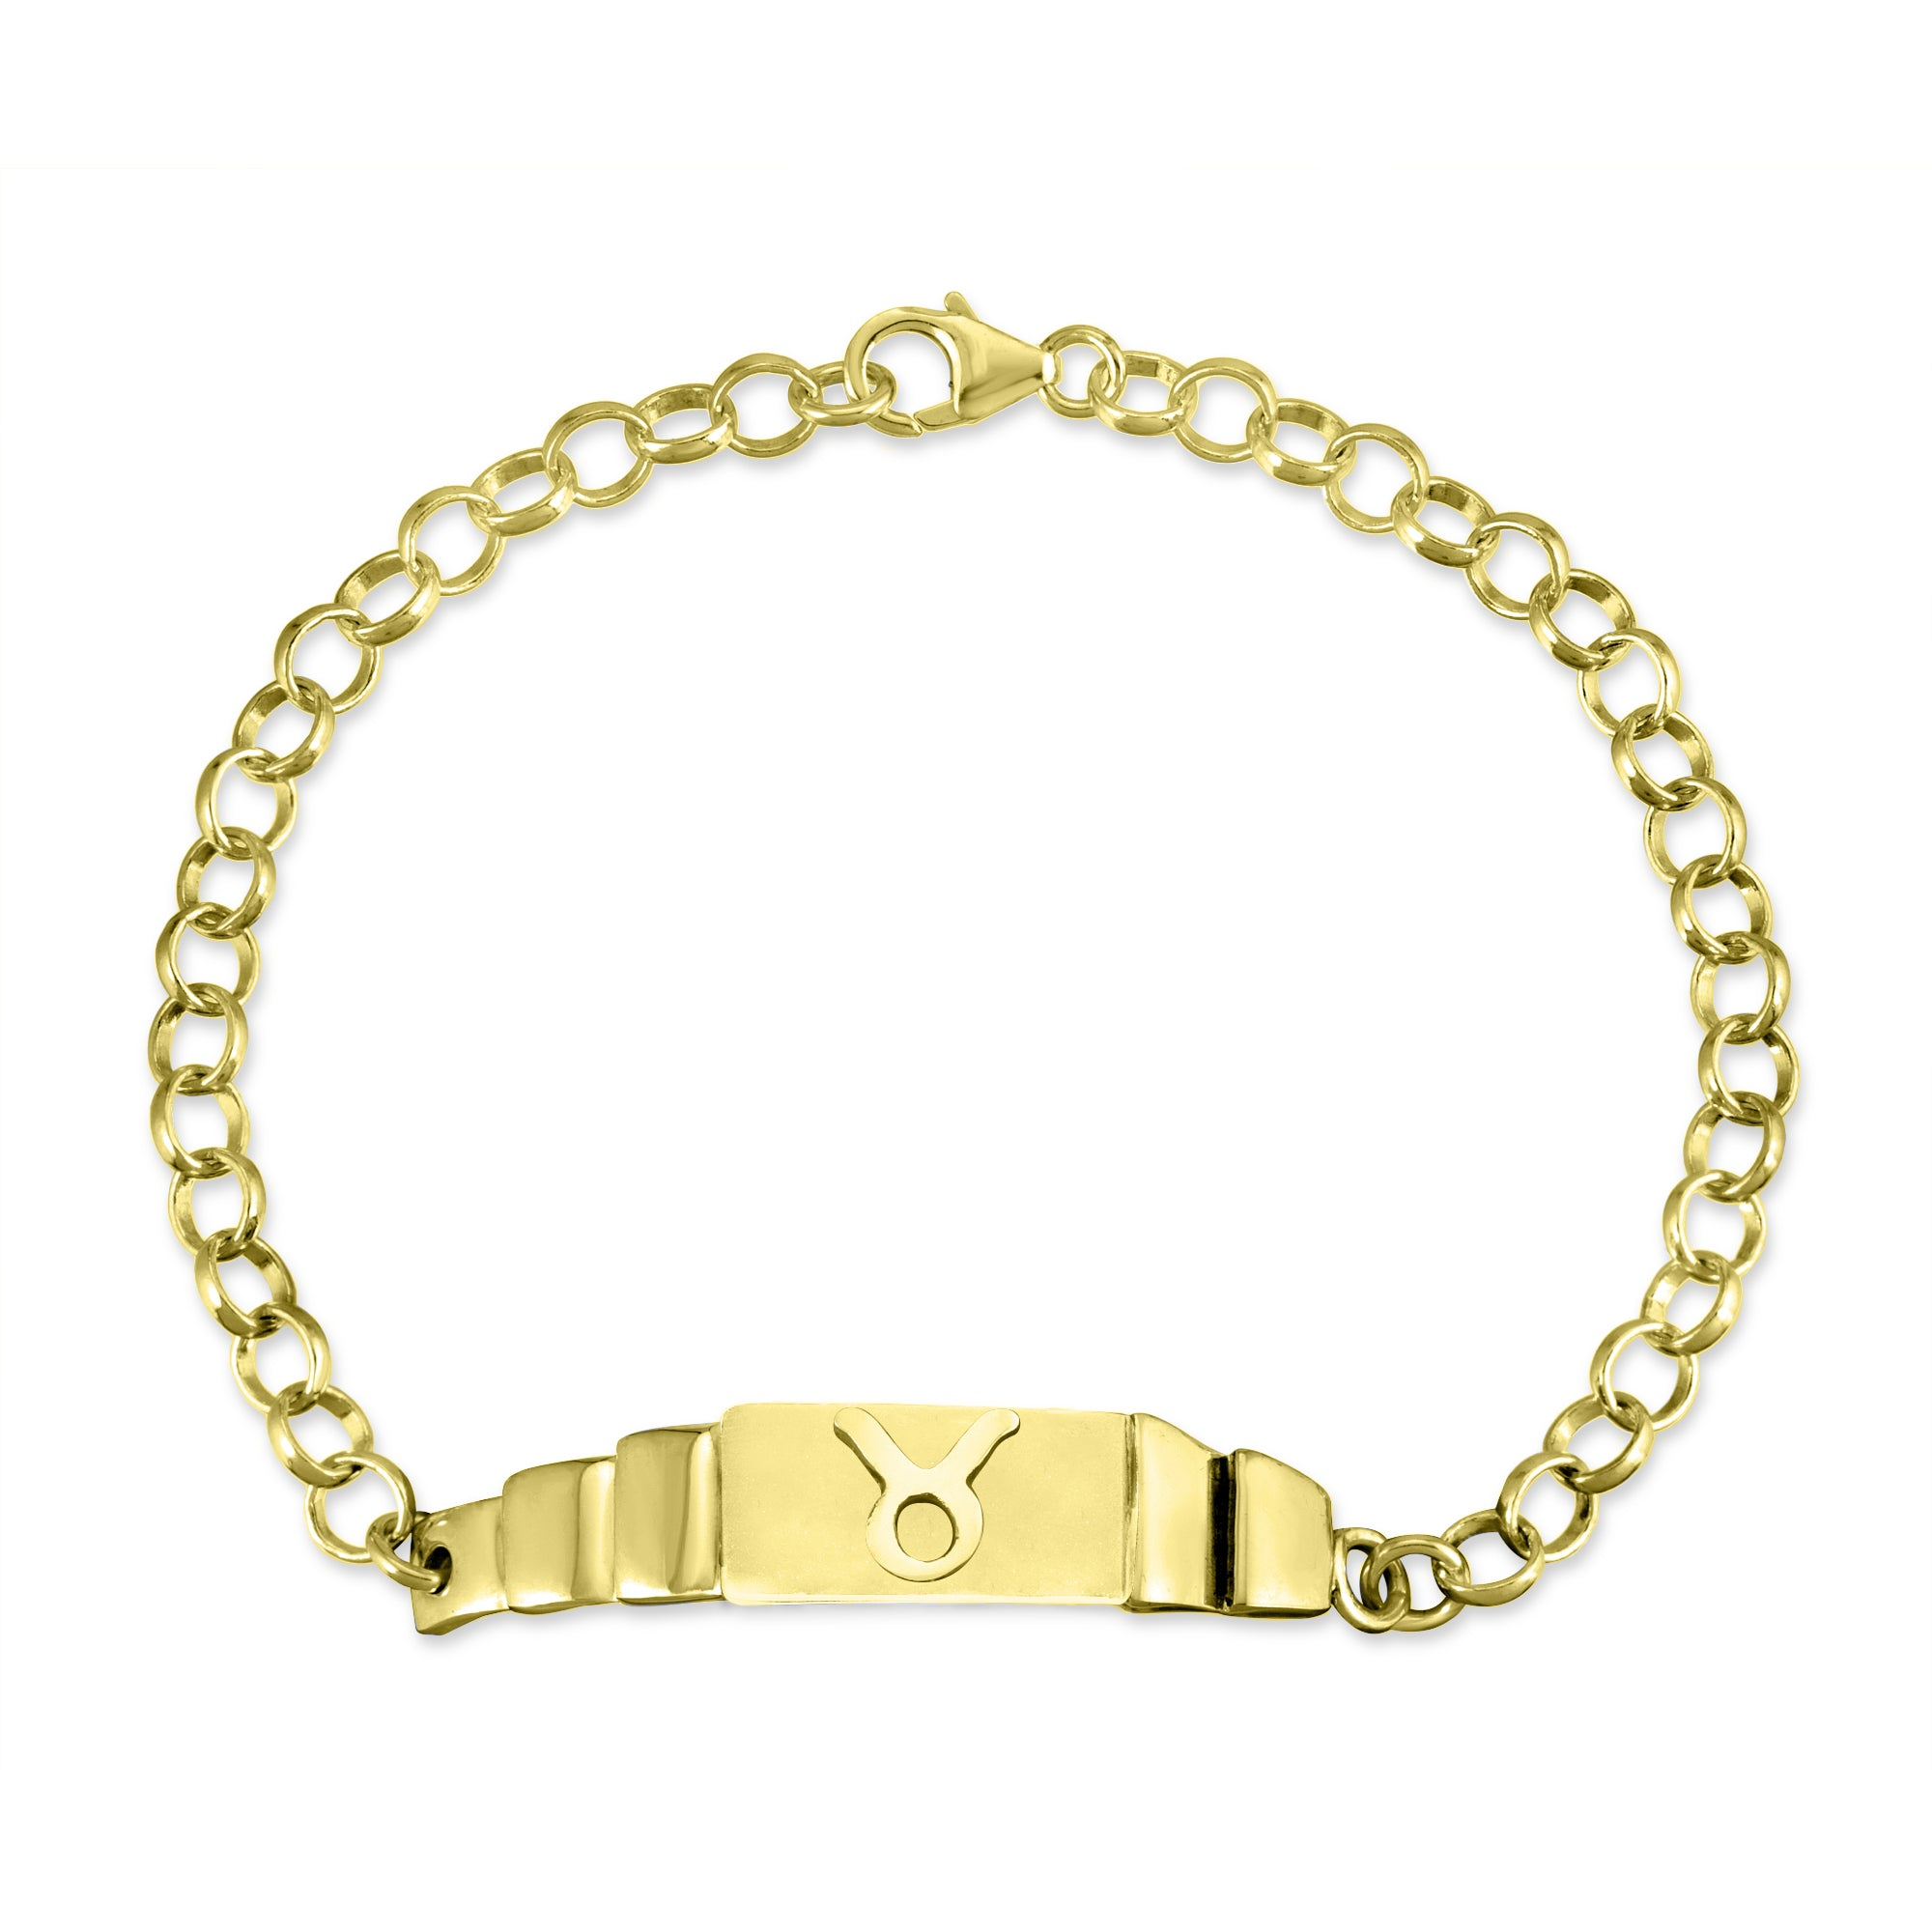 The W Brothers Sterling Silver Horoscope Taurus Zodiac Bracelet in premium sterling silver, available in real 18k gold & rose gold. Find your unique star-sign at thewbros.com